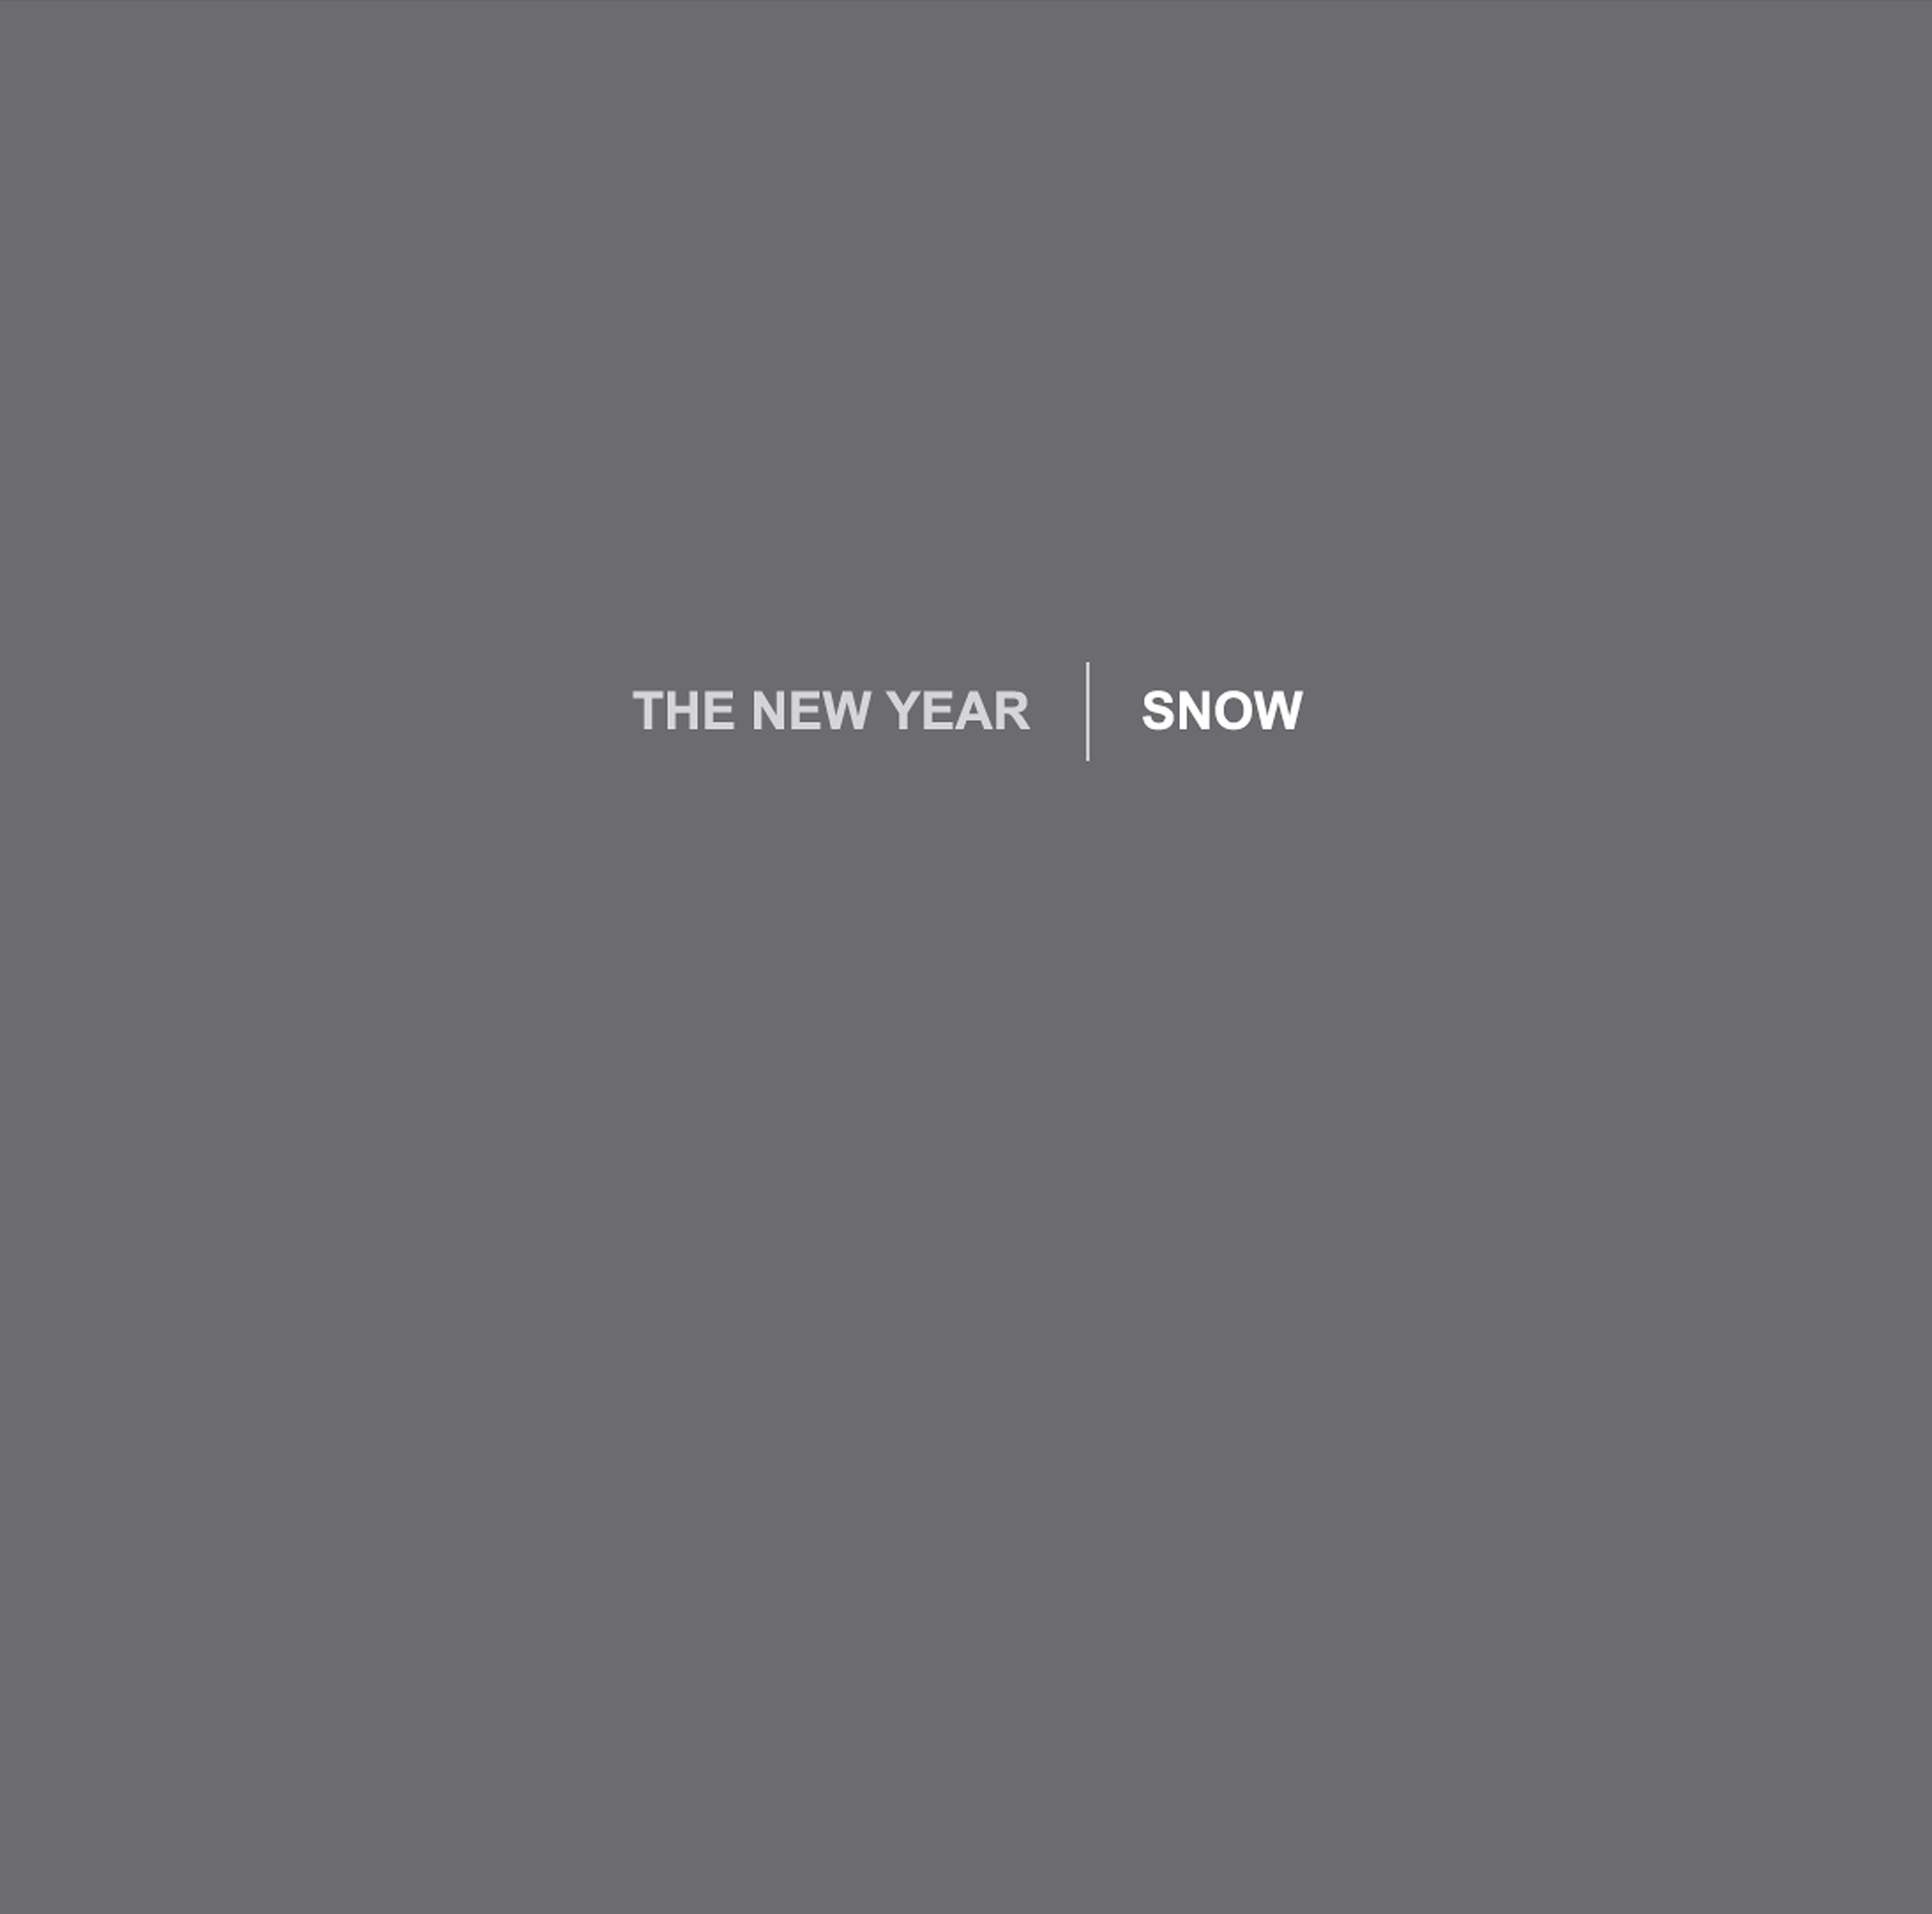 THE NEW YEAR SNOW